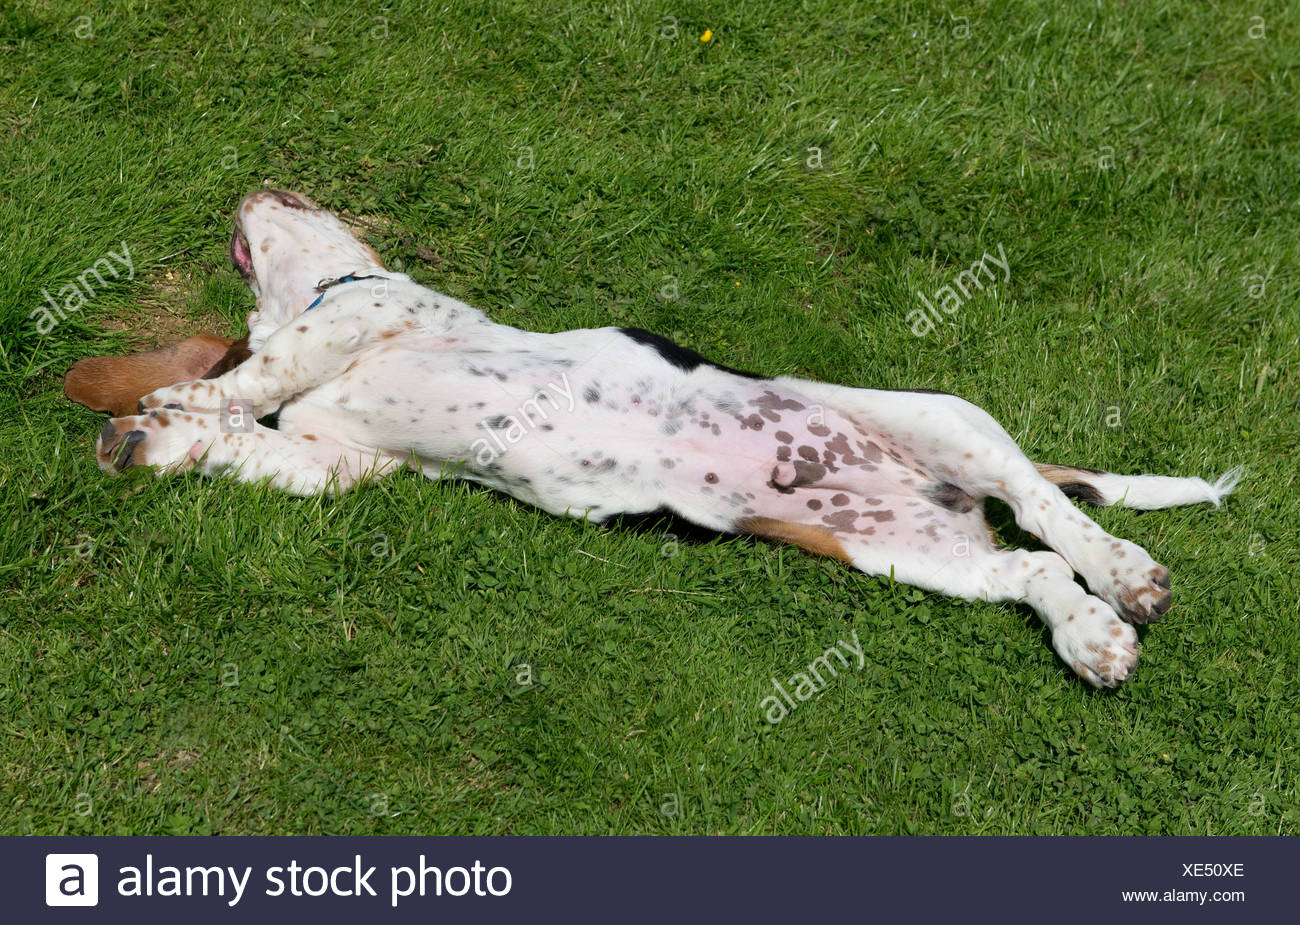 Four month old basset hound puppy rolling on his back - Stock Image